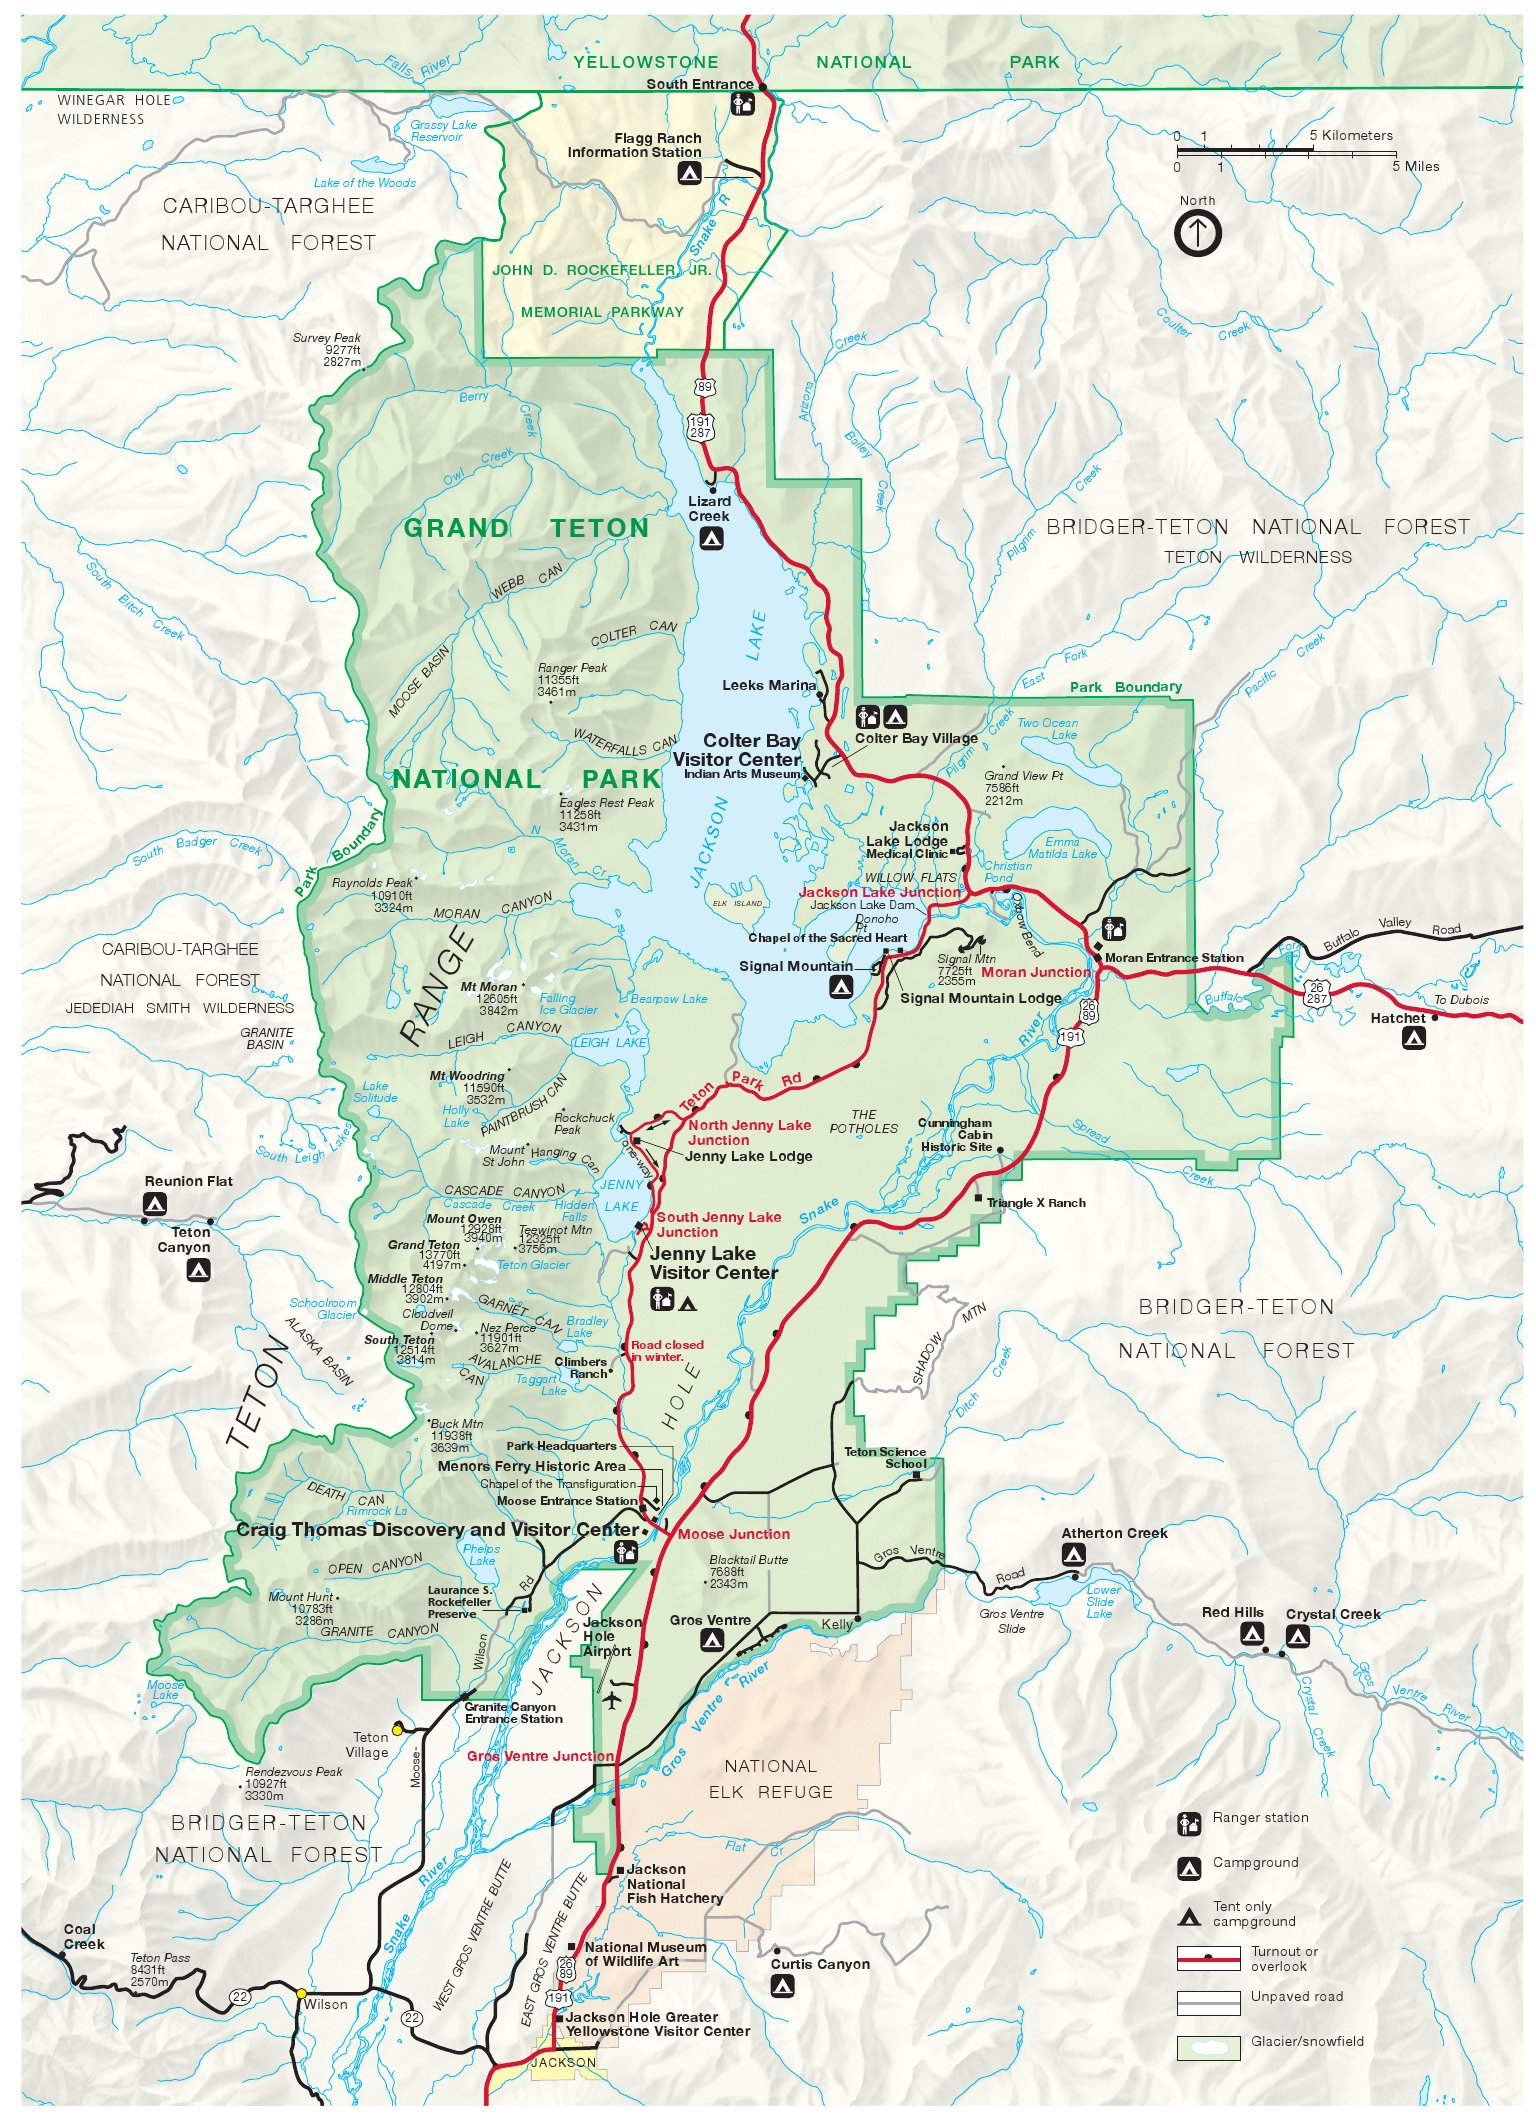 Grand Teton Maps | NPMaps.com - just free maps, period. on wyoming highway 89, map of route 7 va, map of sukhumvit road, map of us 17, map of i-89, map of las vegas boulevard, map of us 19, map springdale utah, map of wyoming cities and towns, map of i-71, map of northern ca, map of southern ut, map of us 287, map of i-15, map of wisconsin highways, map of michigan, map of us 10, map of lake powell arizona, arizona highway 89, map of historic route 66,